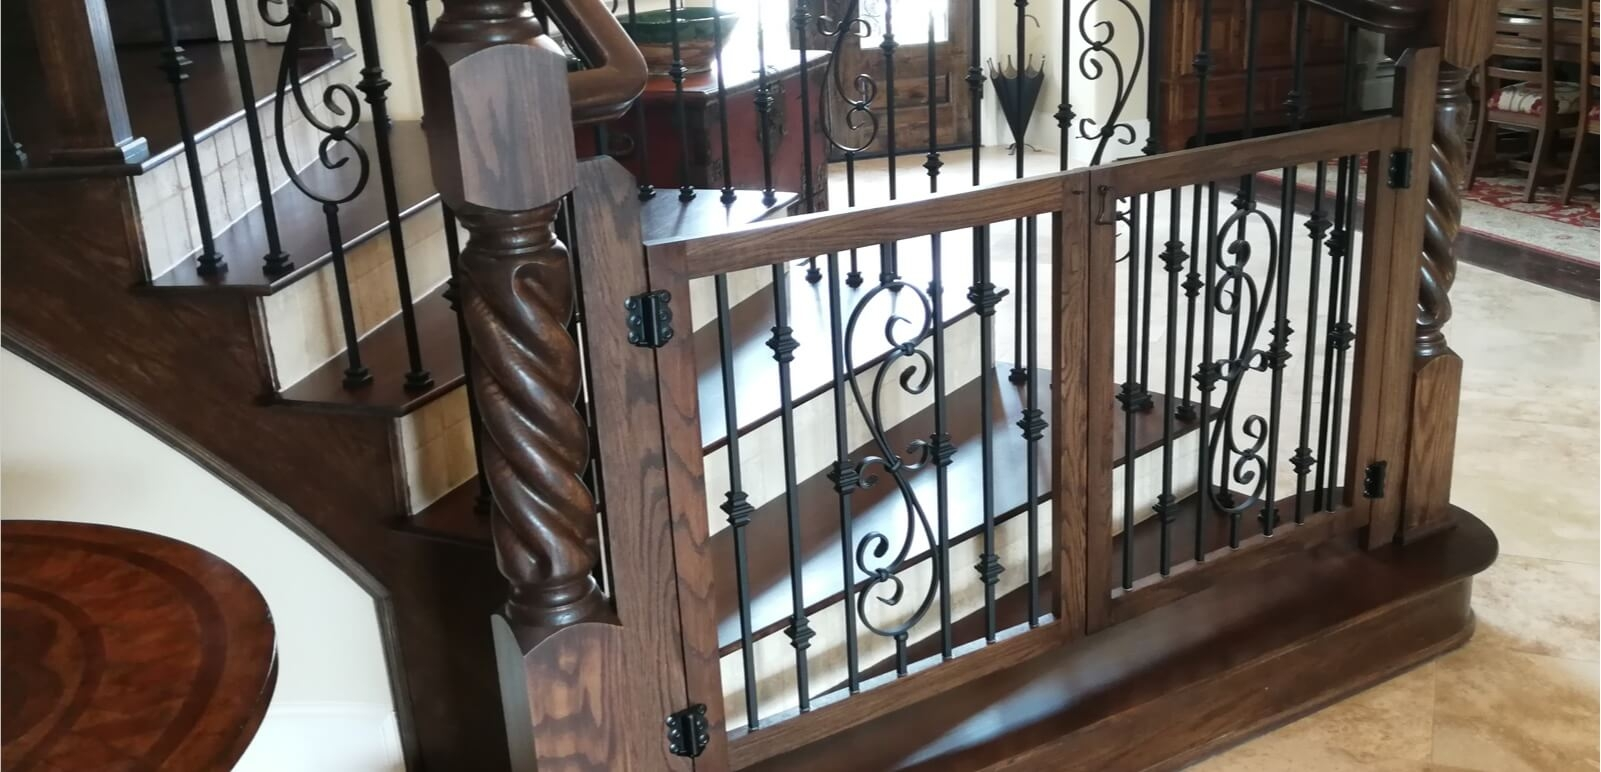 Houston Stair Parts Stair Remodel Iron Balusters Railing   Handrail Companies Near Me   Metal   Glass Handrail   Staircase   Deck Railing   Stair Treads